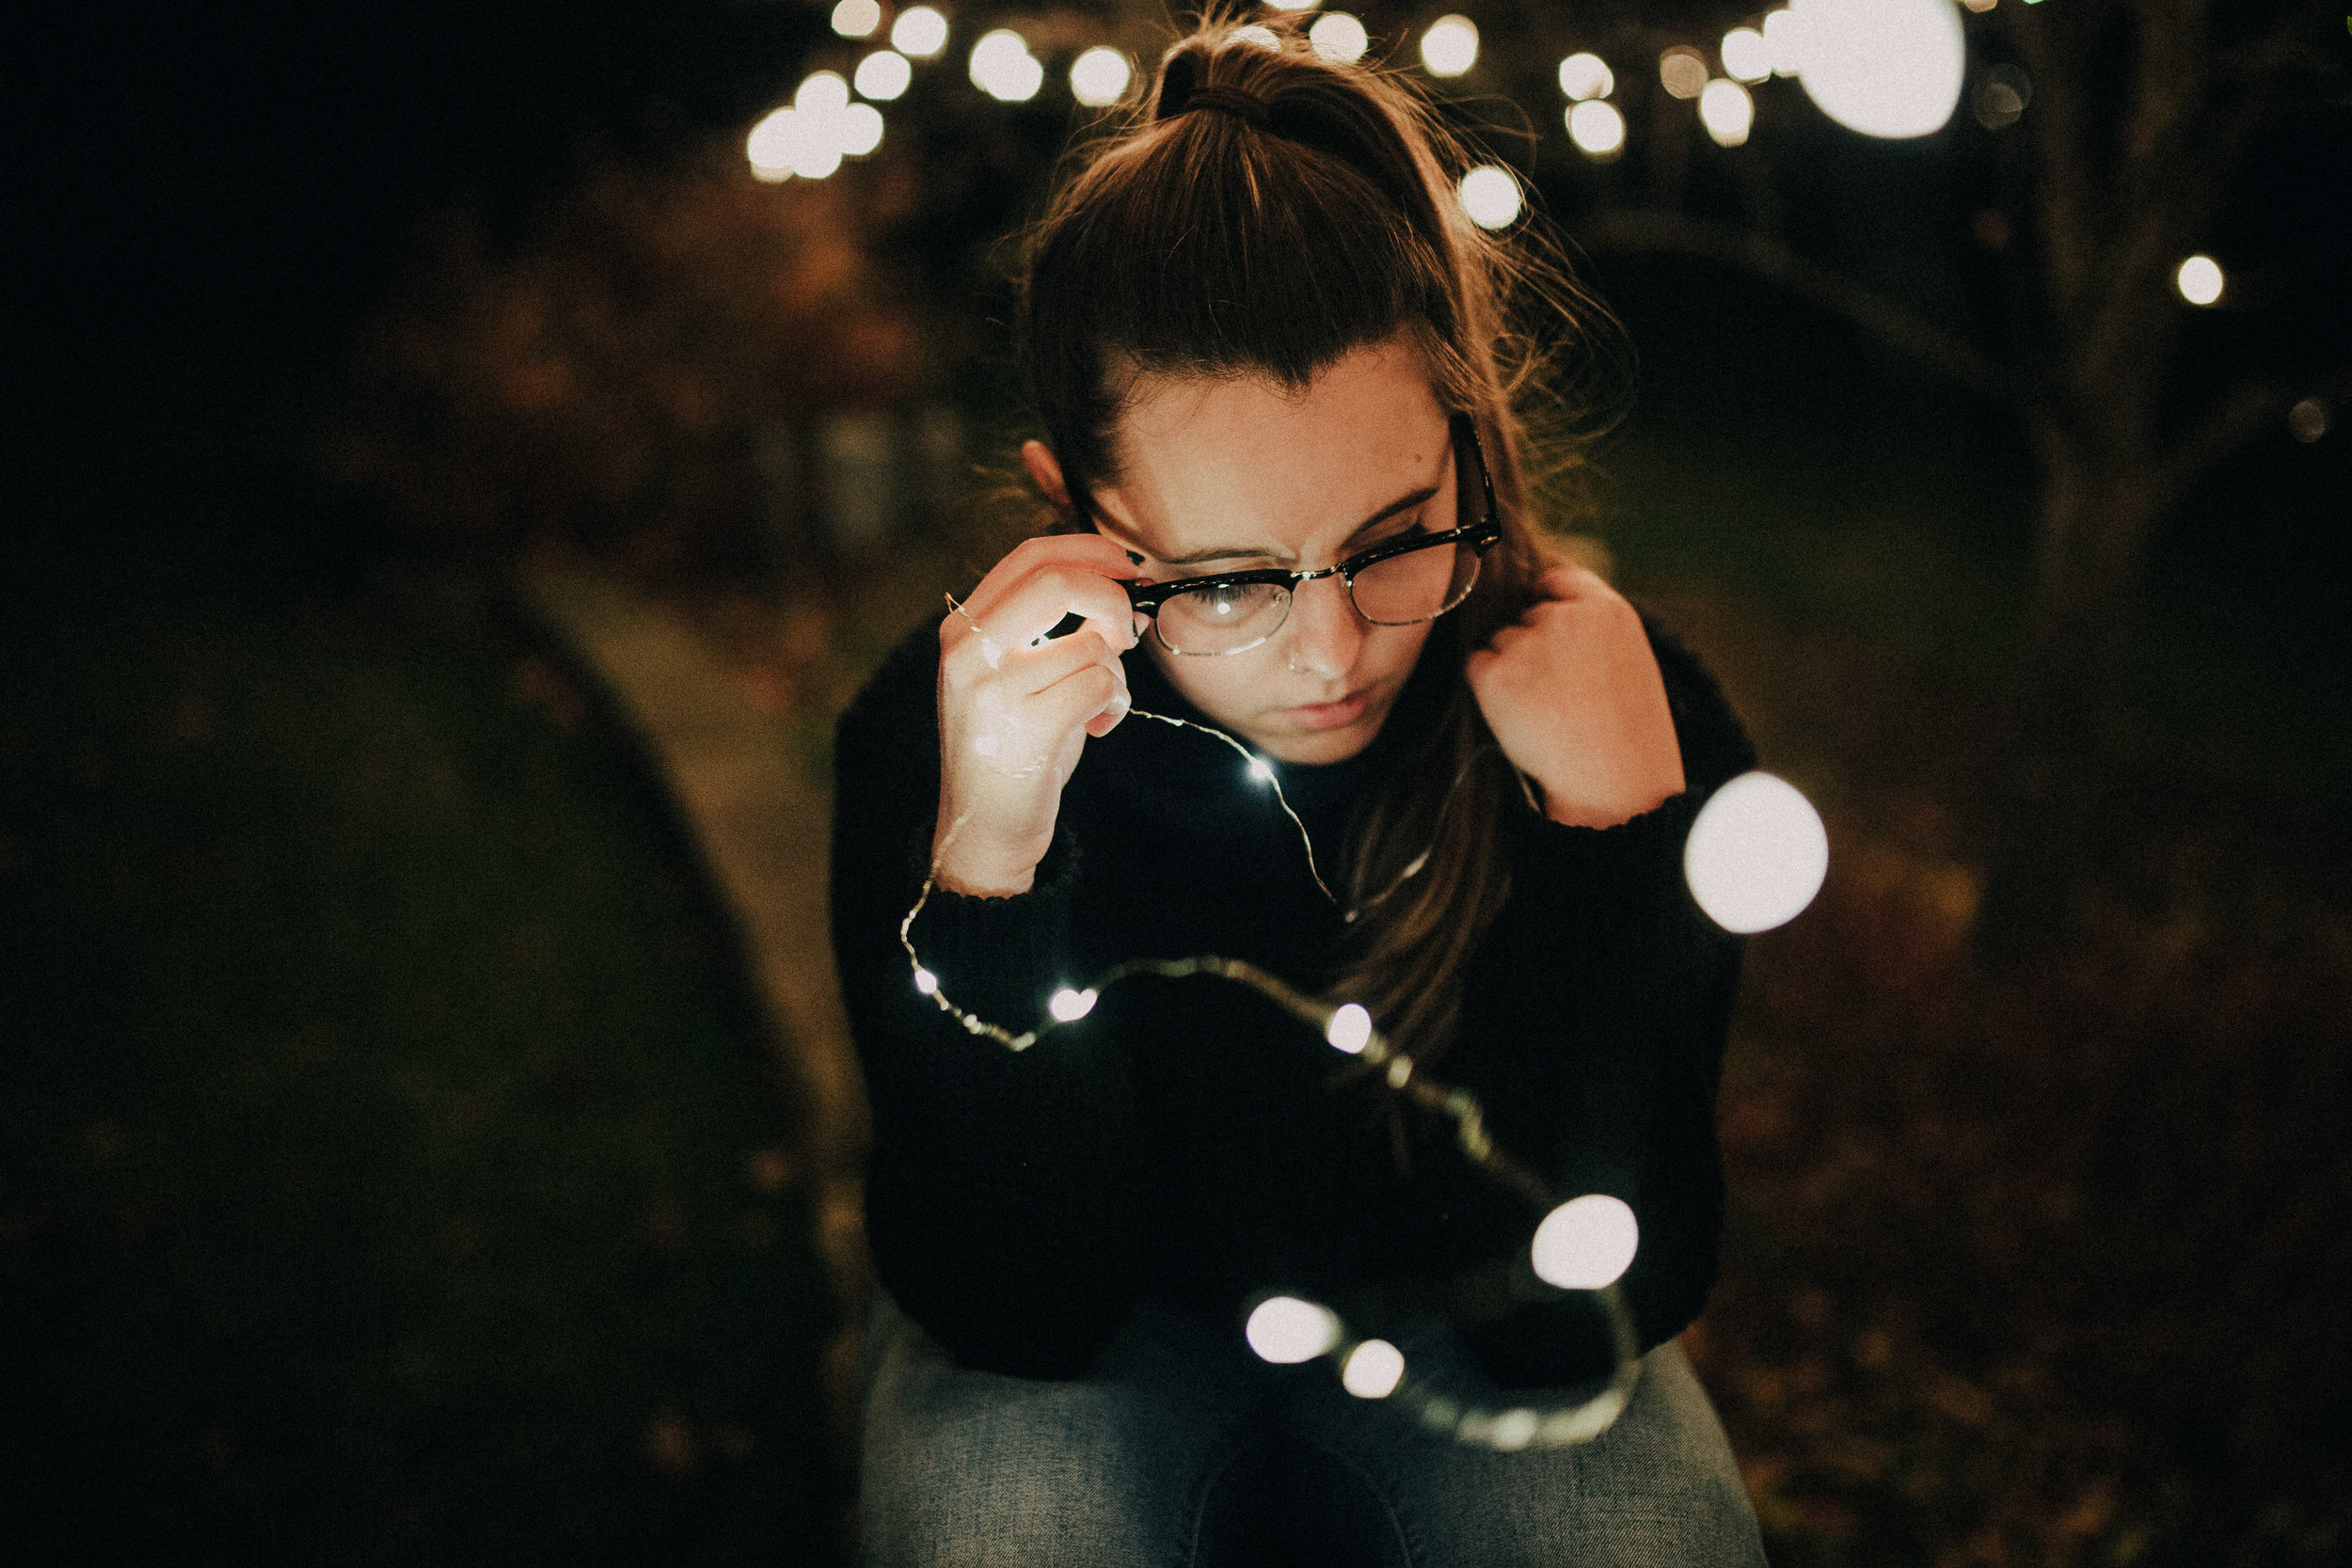 I love the Christmas lights that get strung up this time of the year and I actually went and got some photos with them.